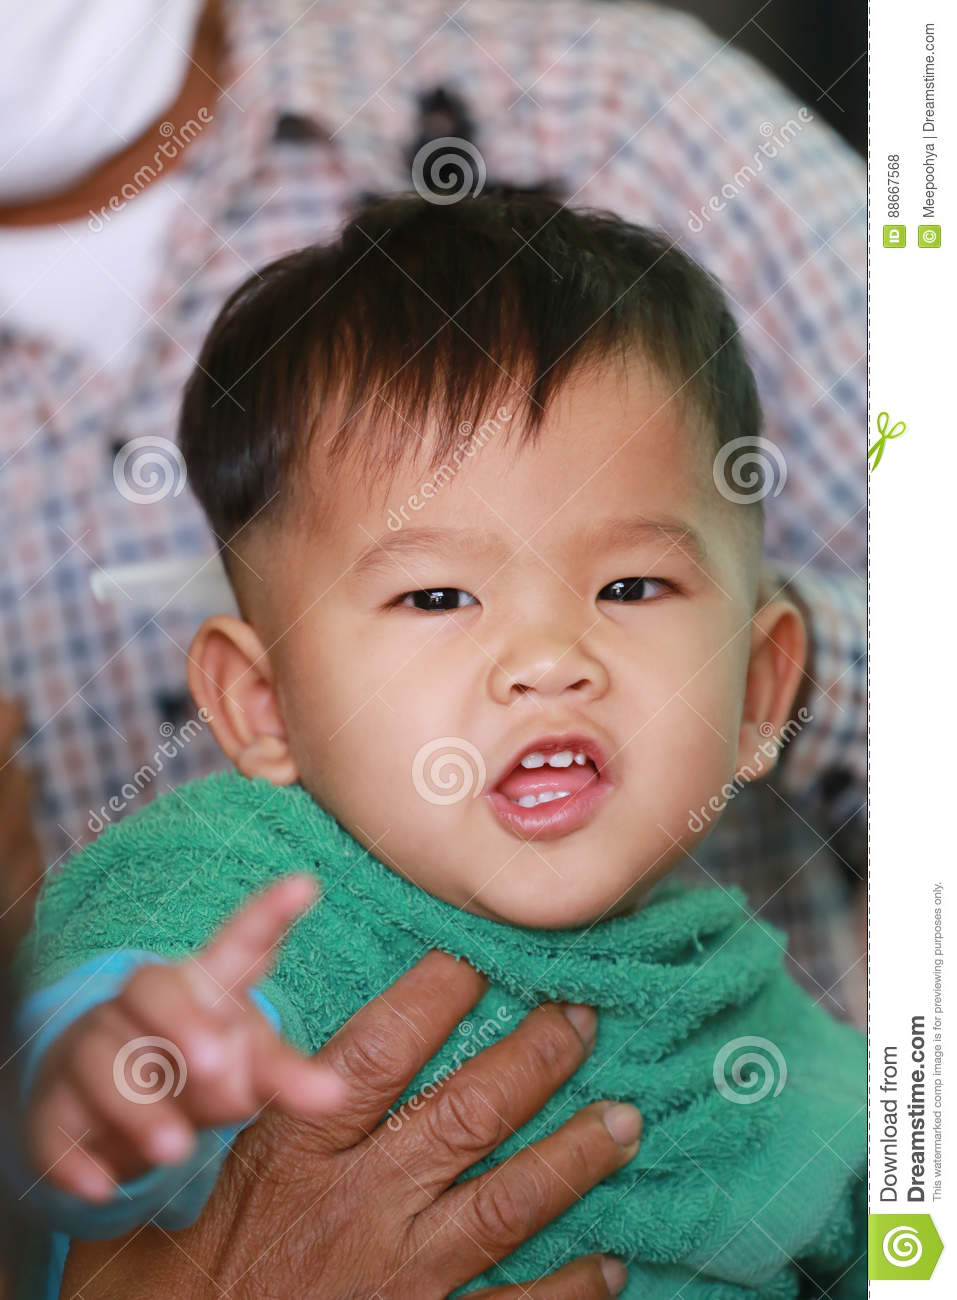 Asian Children Of A Boy In Haircut Stock Photo Image Of Children